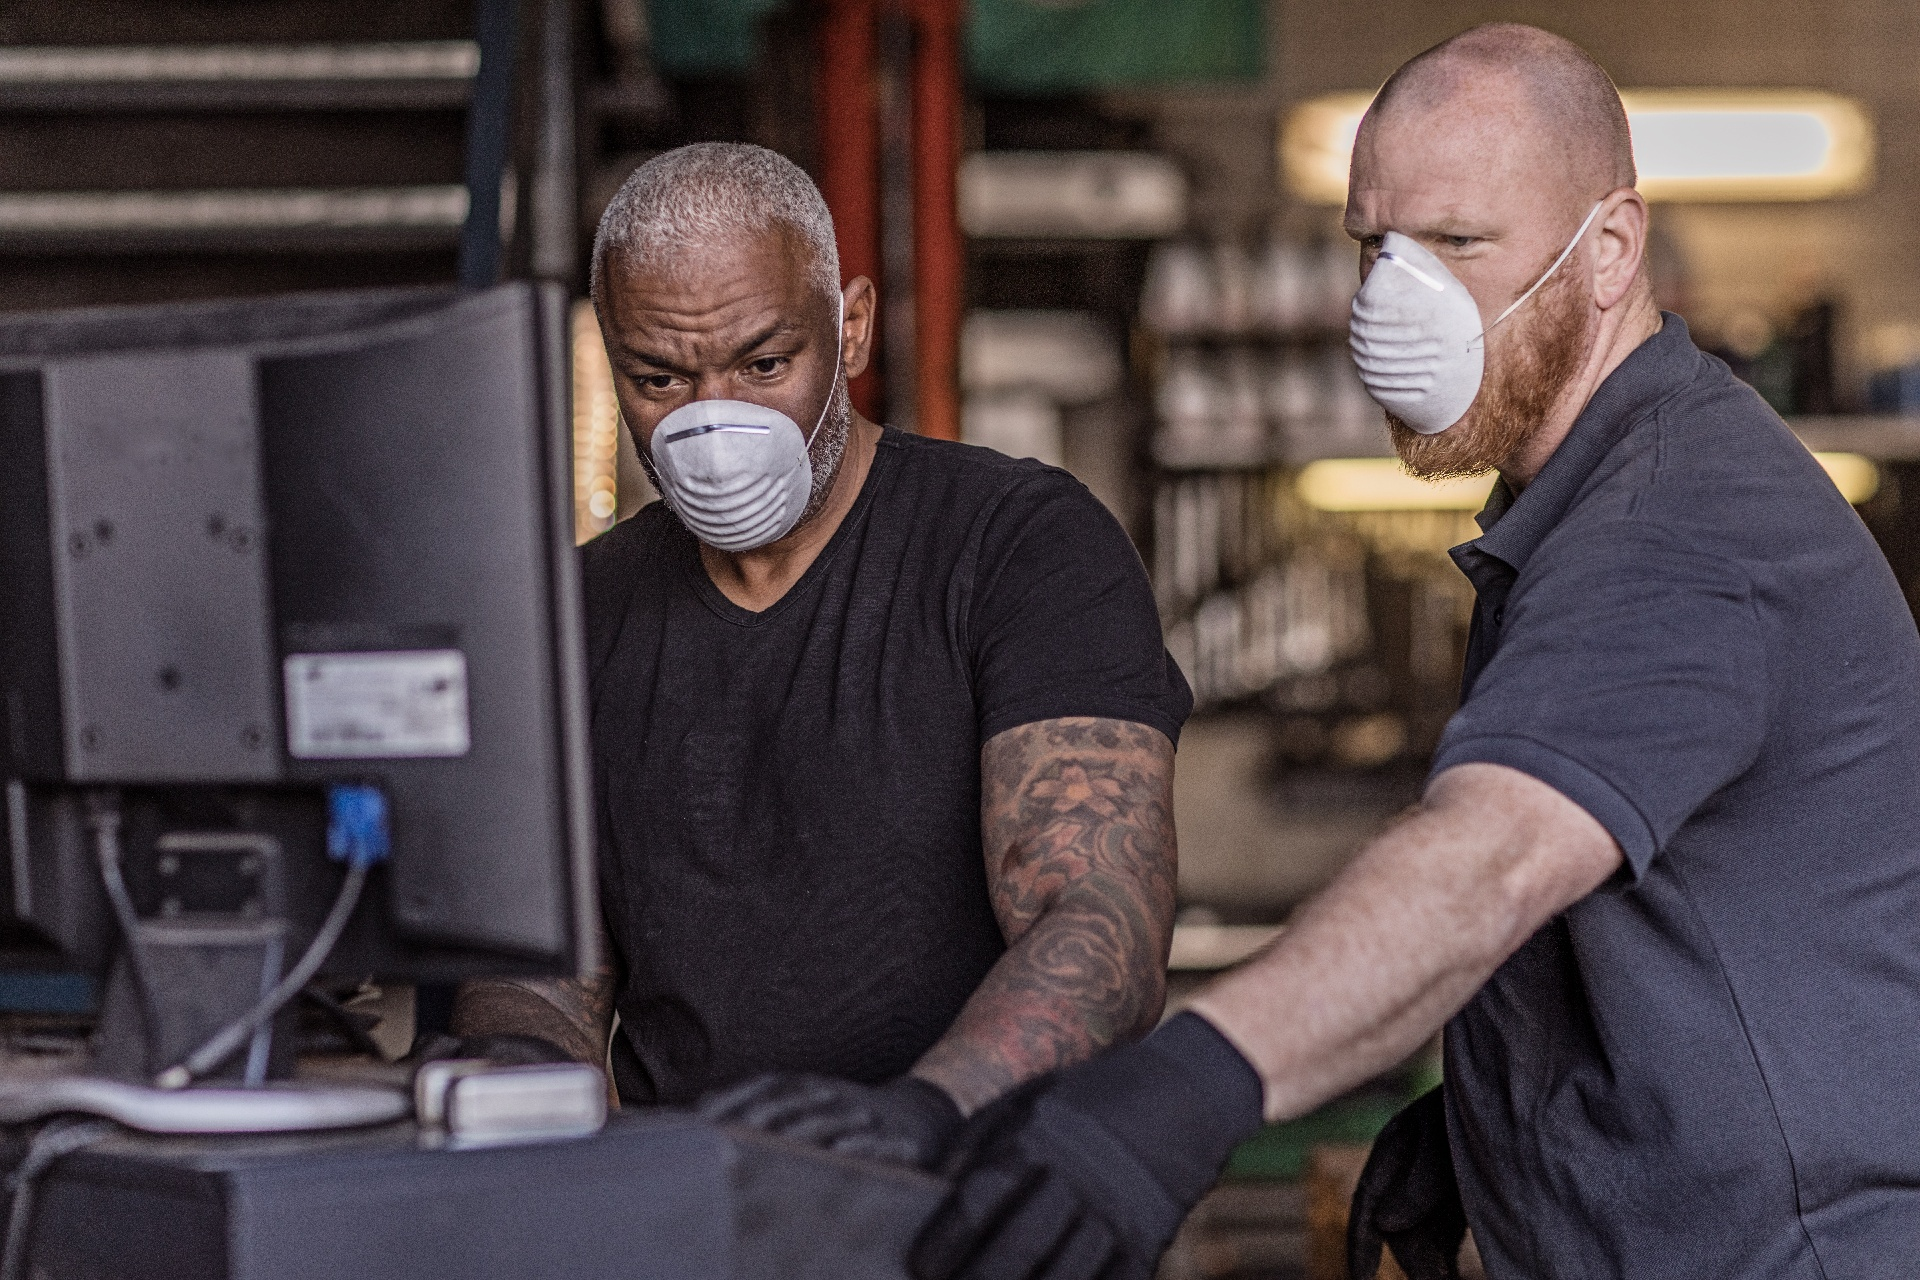 Two essential workers looking at a computer in the warehouse wearing masks